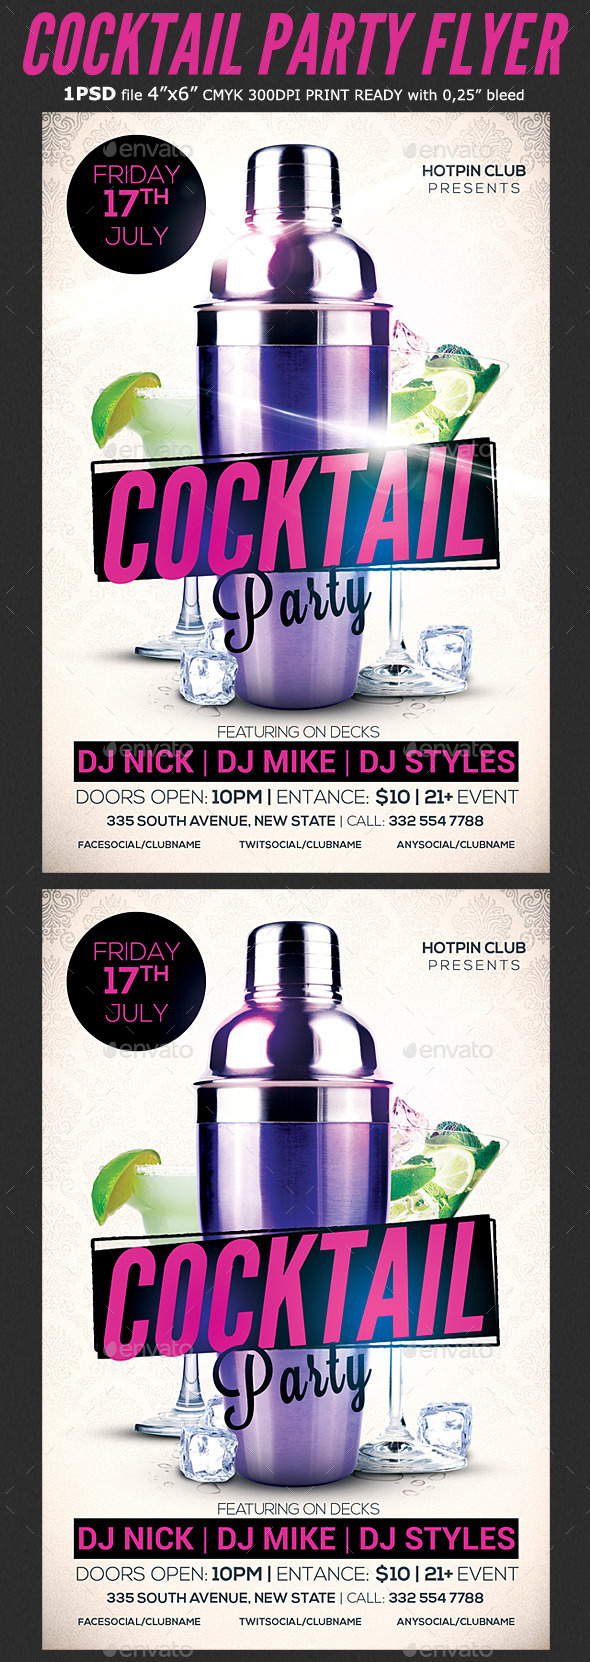 Cocktail Party Flyer Template 3 - Clubs & Parties Events